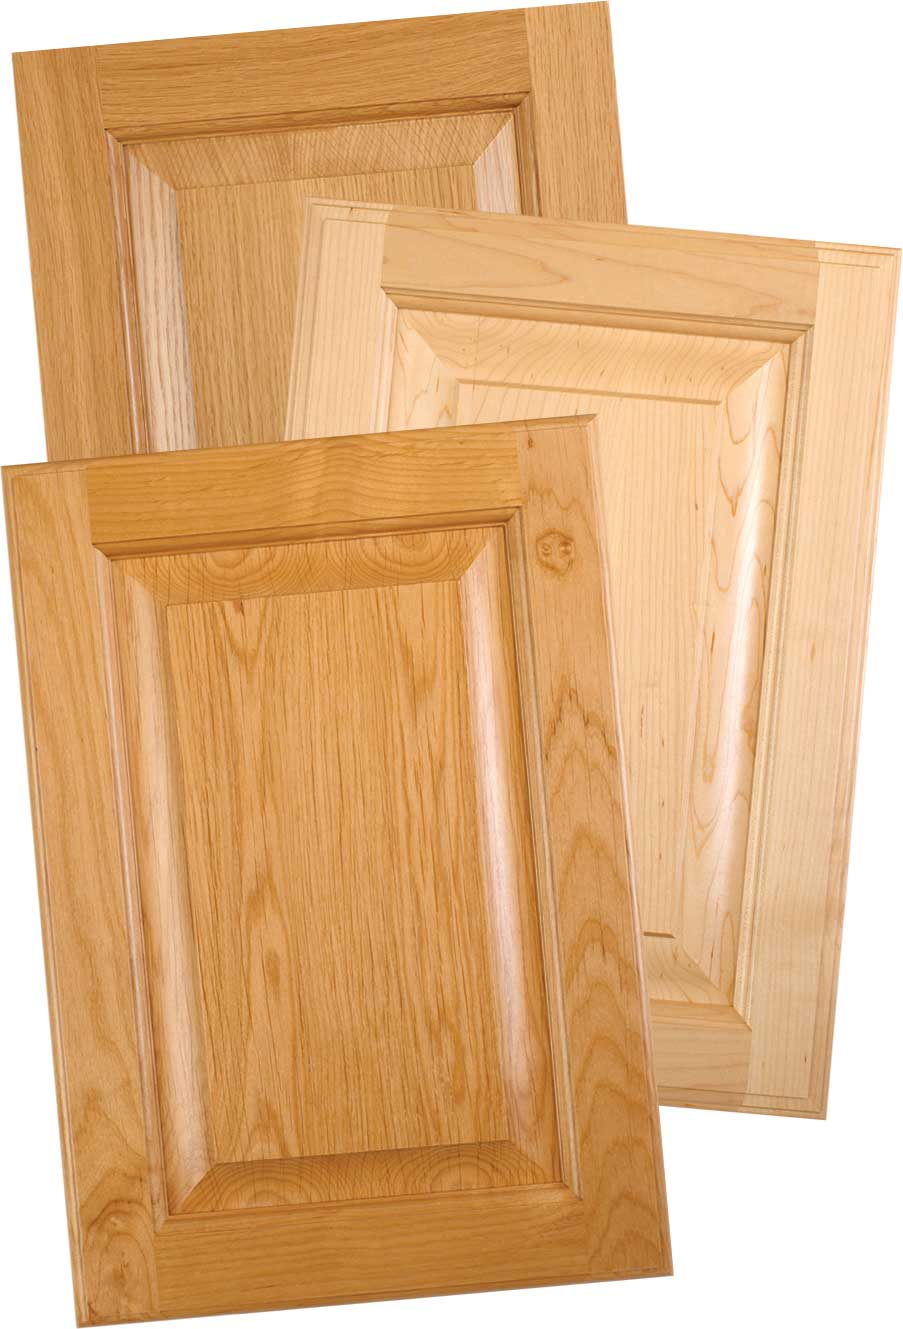 Taylorcraft cabinet door company introduces 1 thick for 1 door cupboard